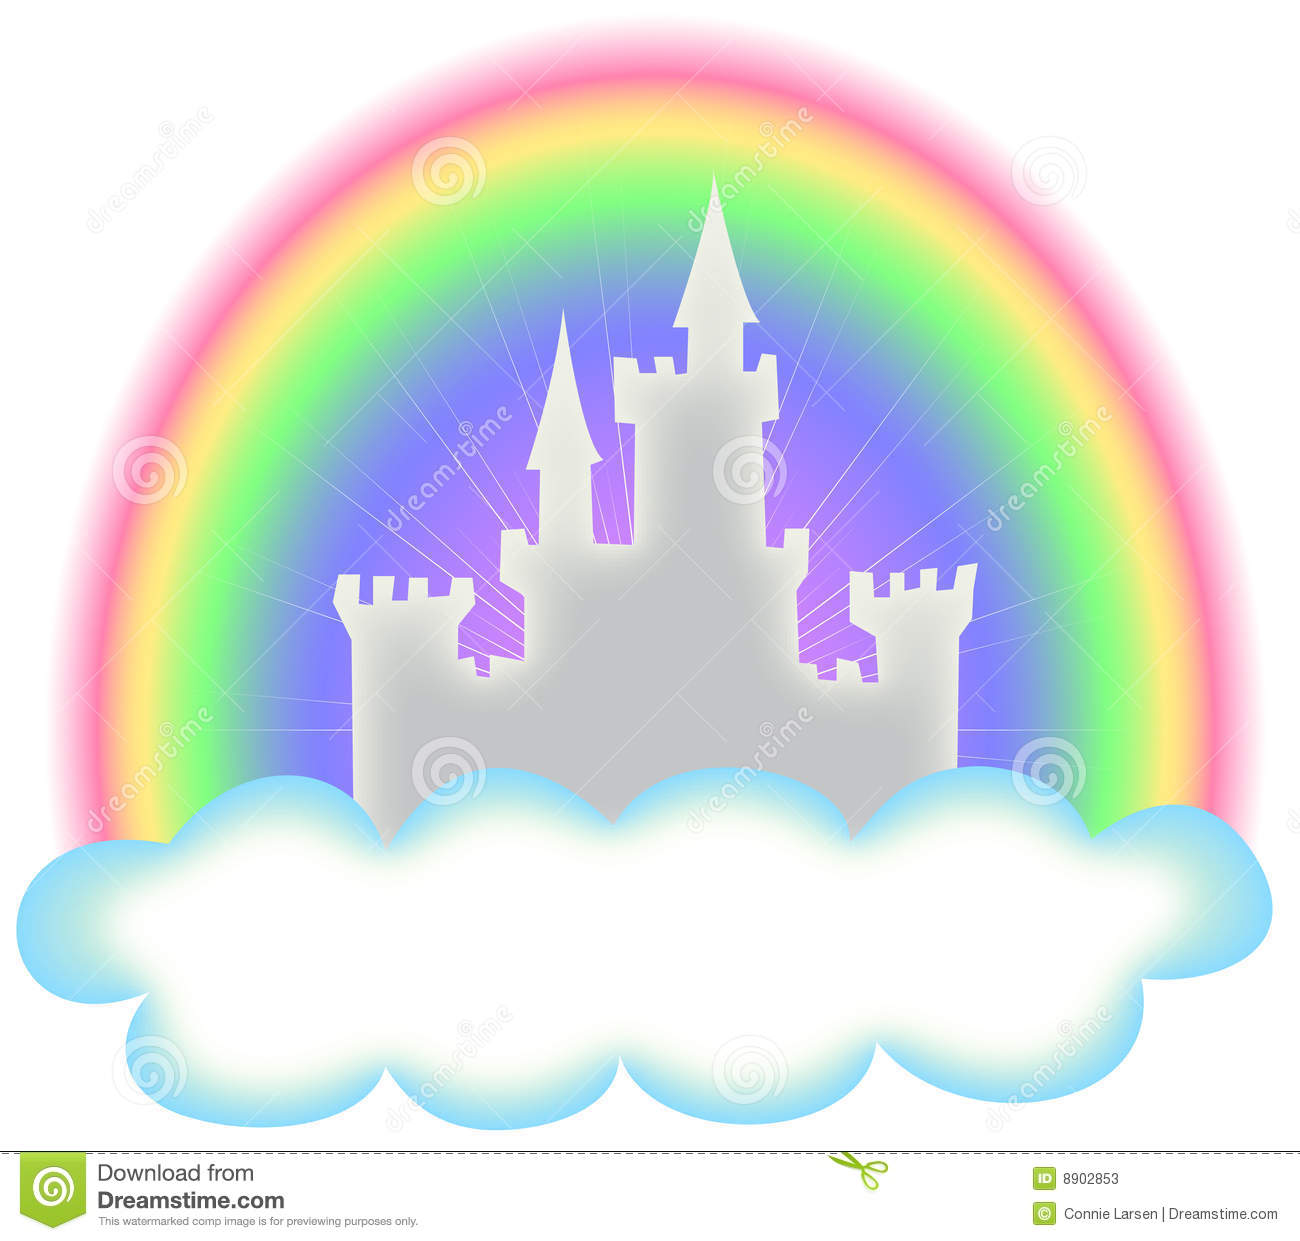 Fairy Tale clipart #7, Download drawings